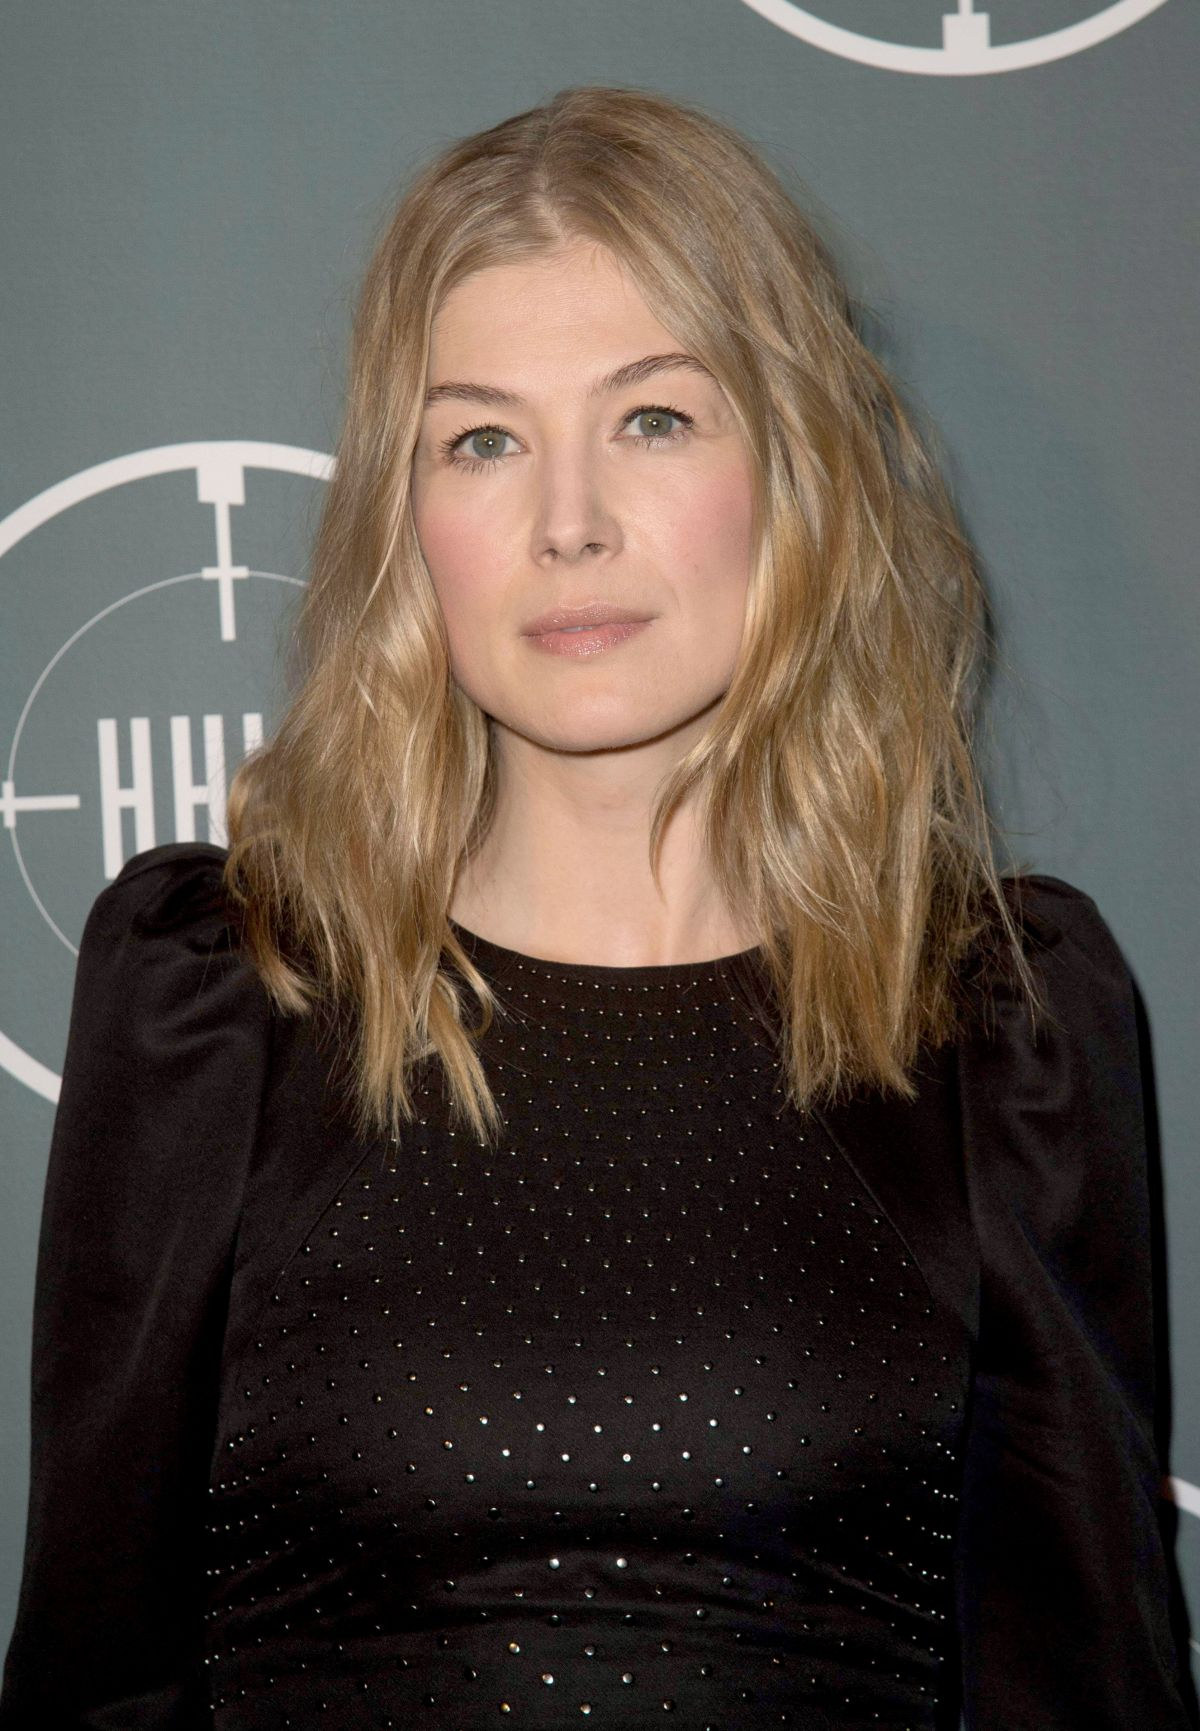 ROSAMUND PIKE at HHhH ...